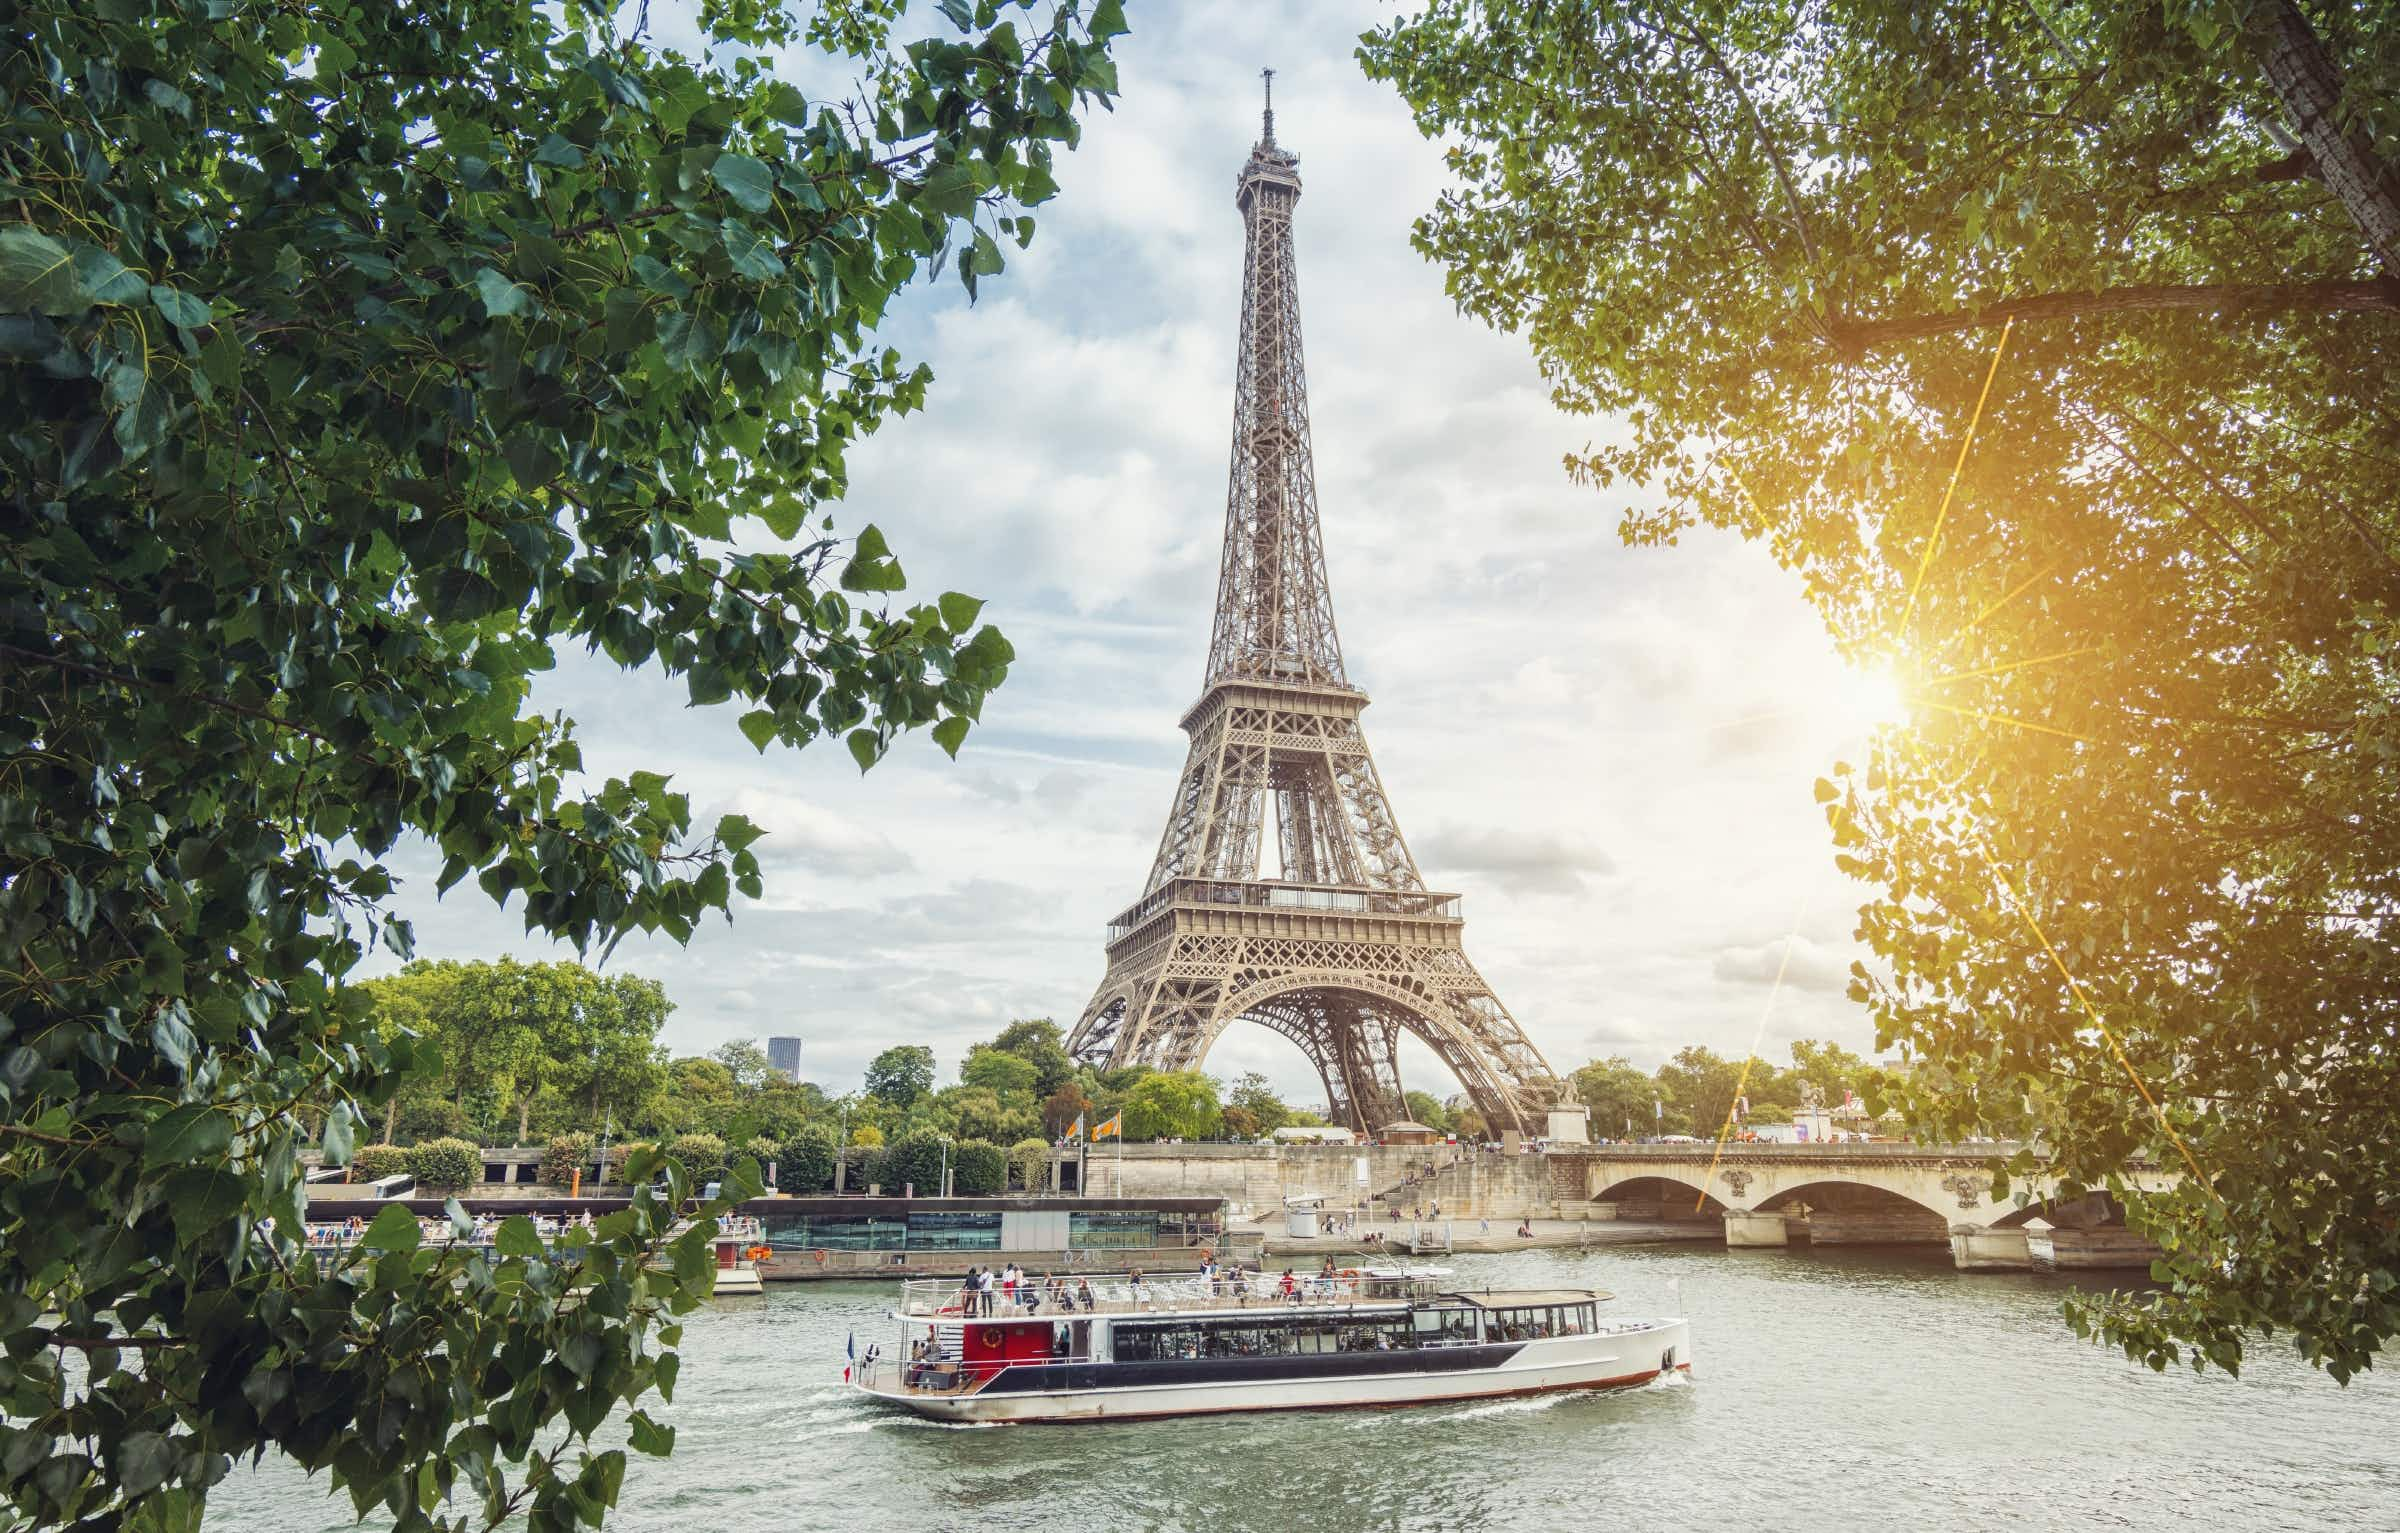 More budget-friendly flights to Paris are coming with a new airline partnership